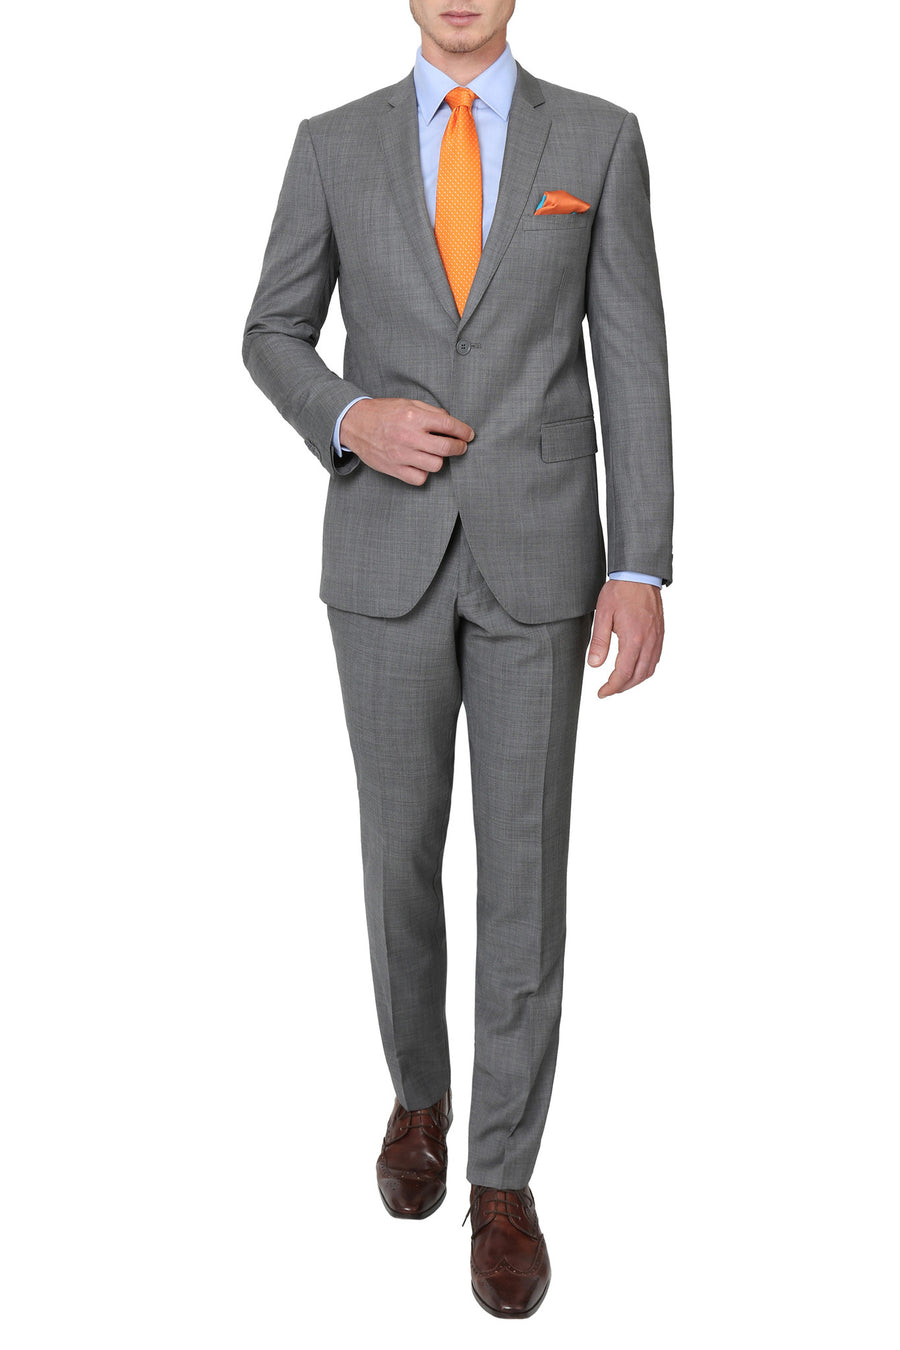 Studio Italia T421 Curtis Suit in Mid Grey